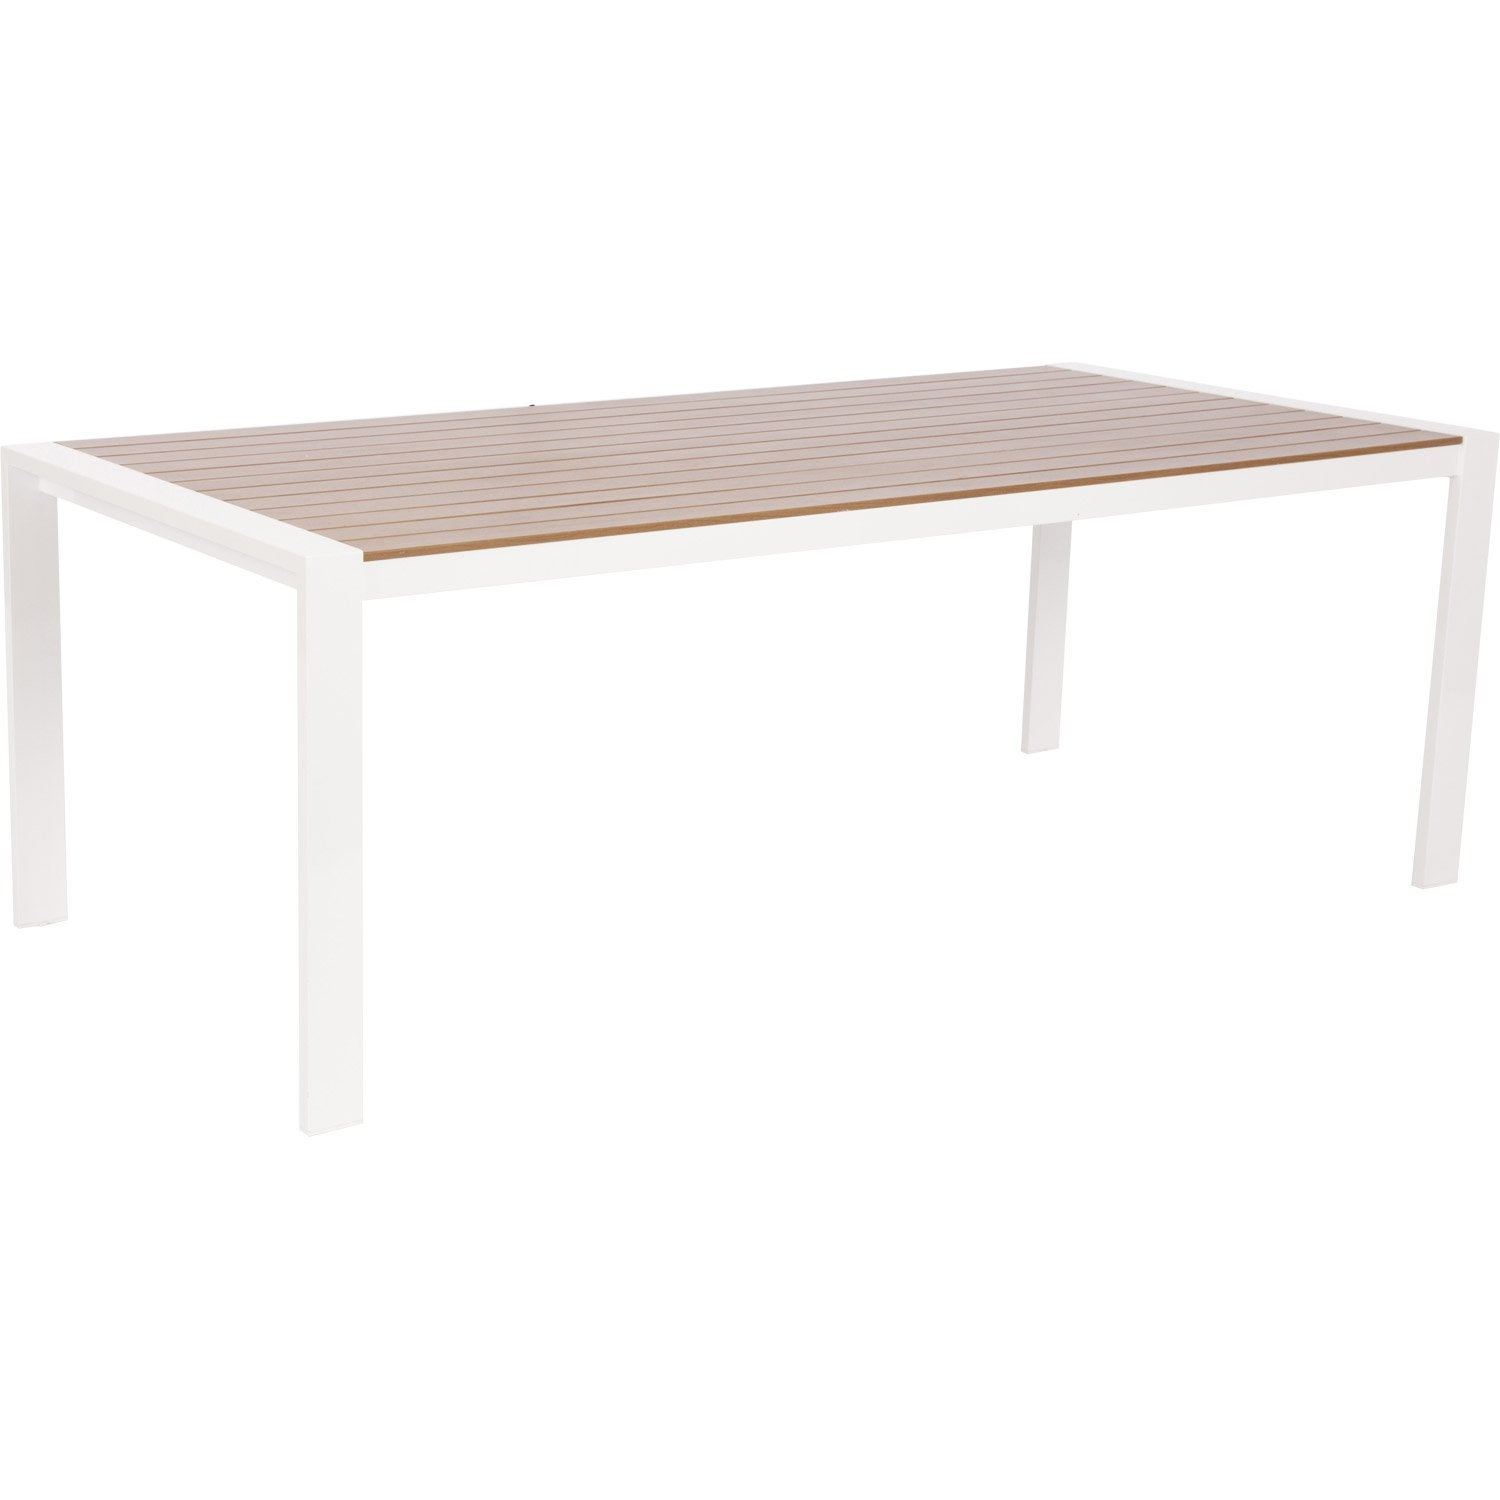 table de jardin port nelson rectangulaire blanc. Black Bedroom Furniture Sets. Home Design Ideas